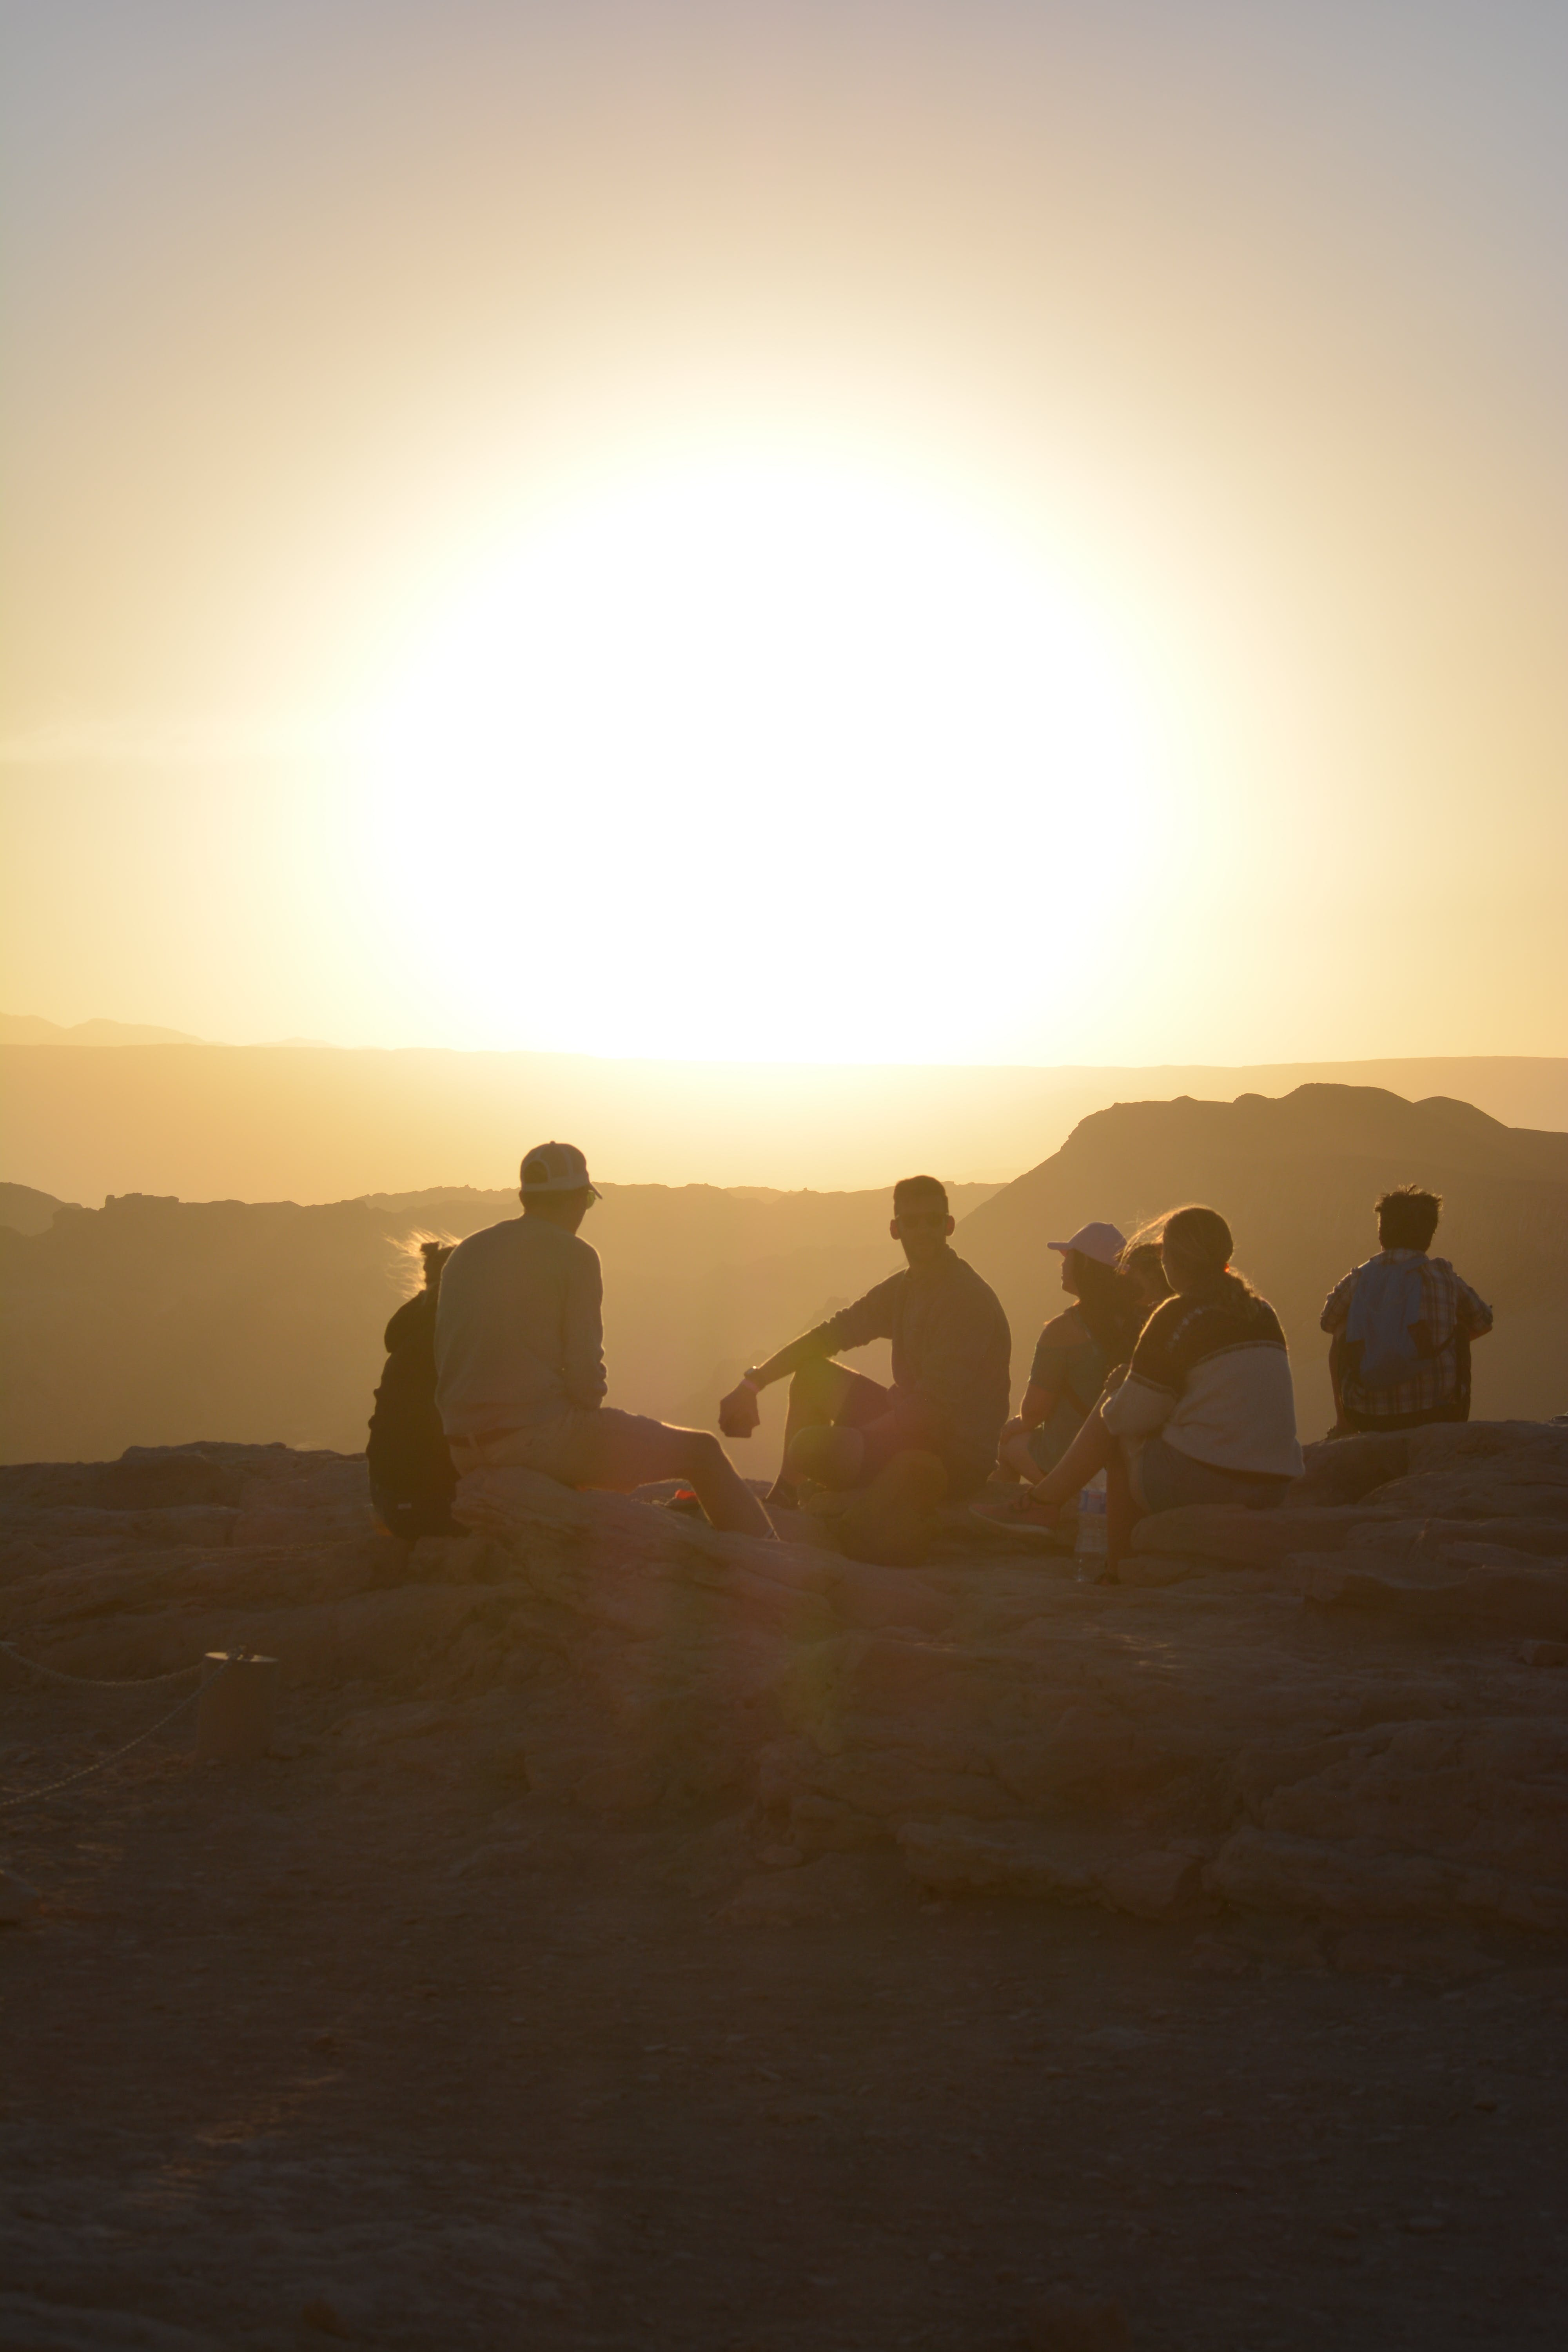 Group of People Near Mountain during Golden Hour